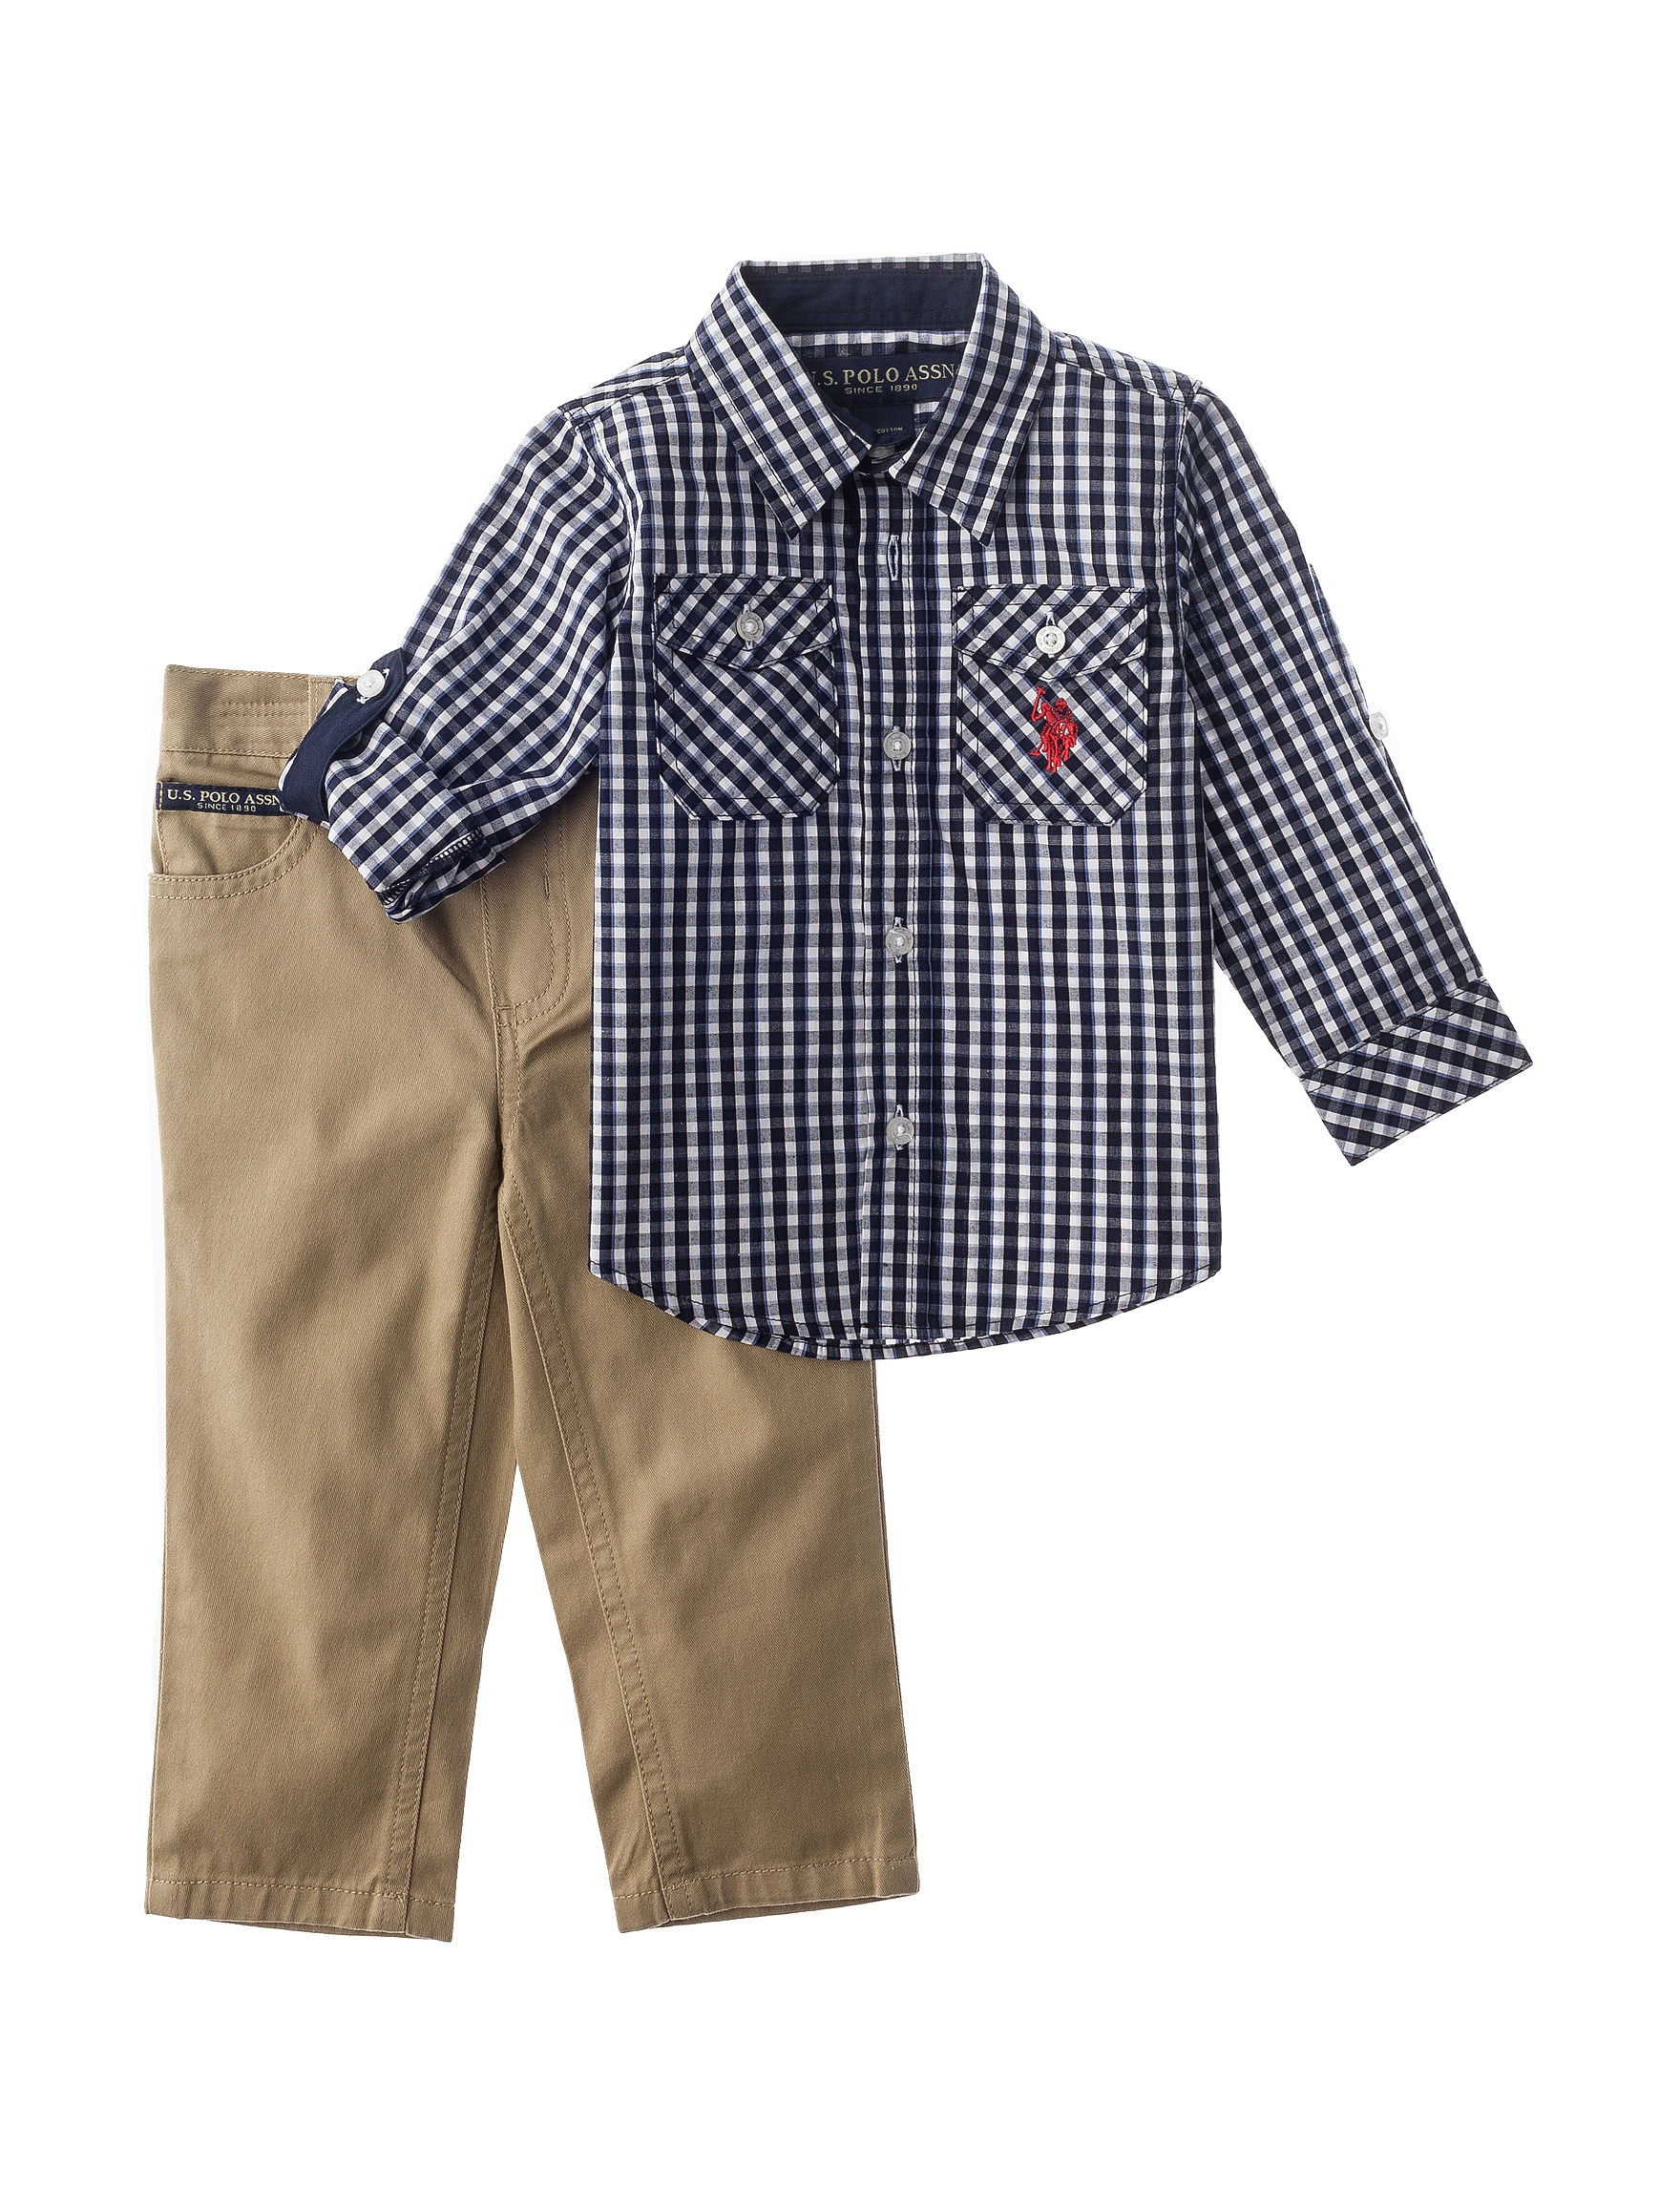 U.S. Polo Assn. Multi